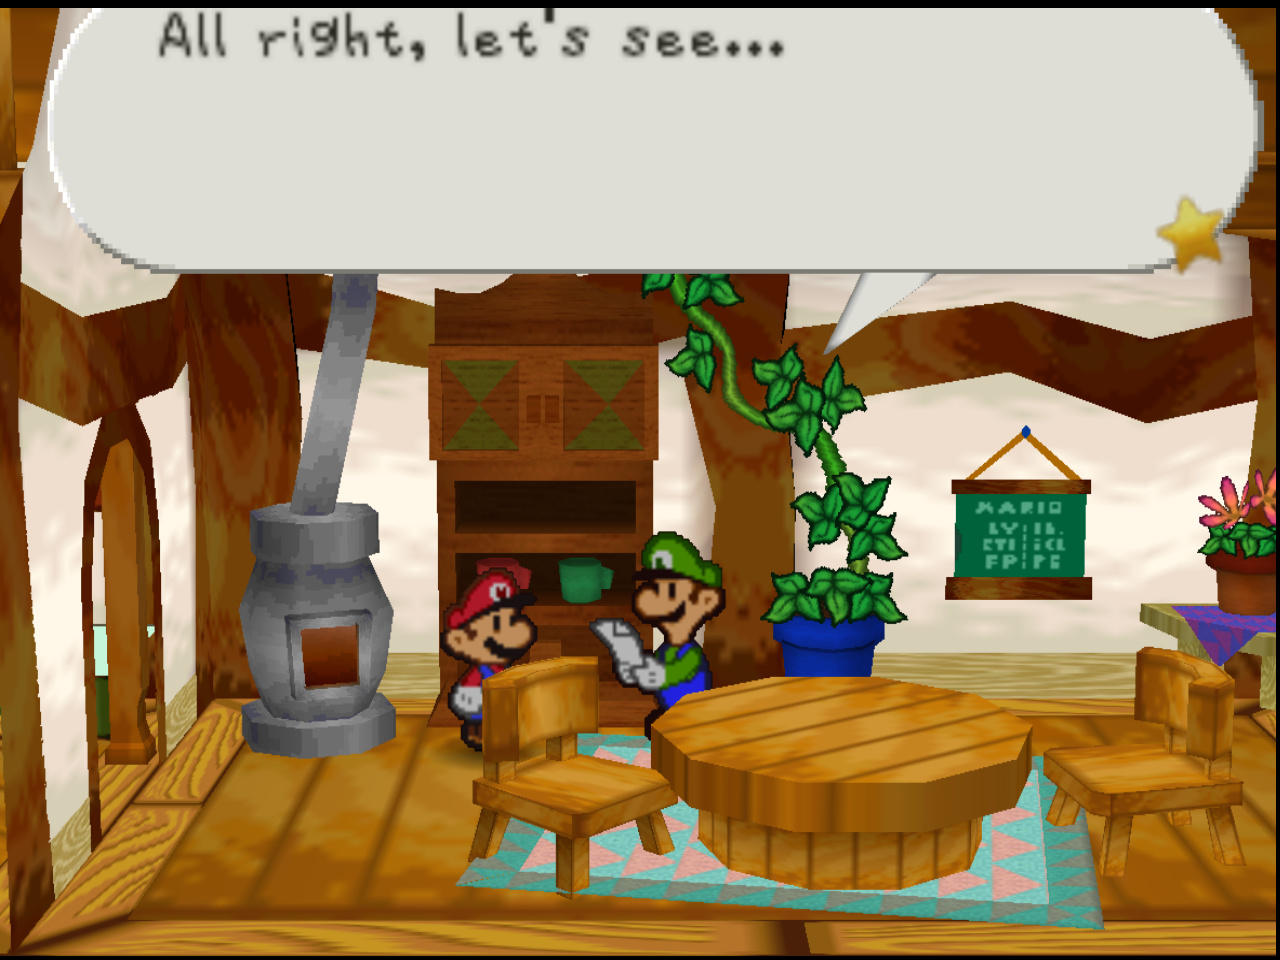 How is Paper Mario meant to look? - General - Libretro Forums